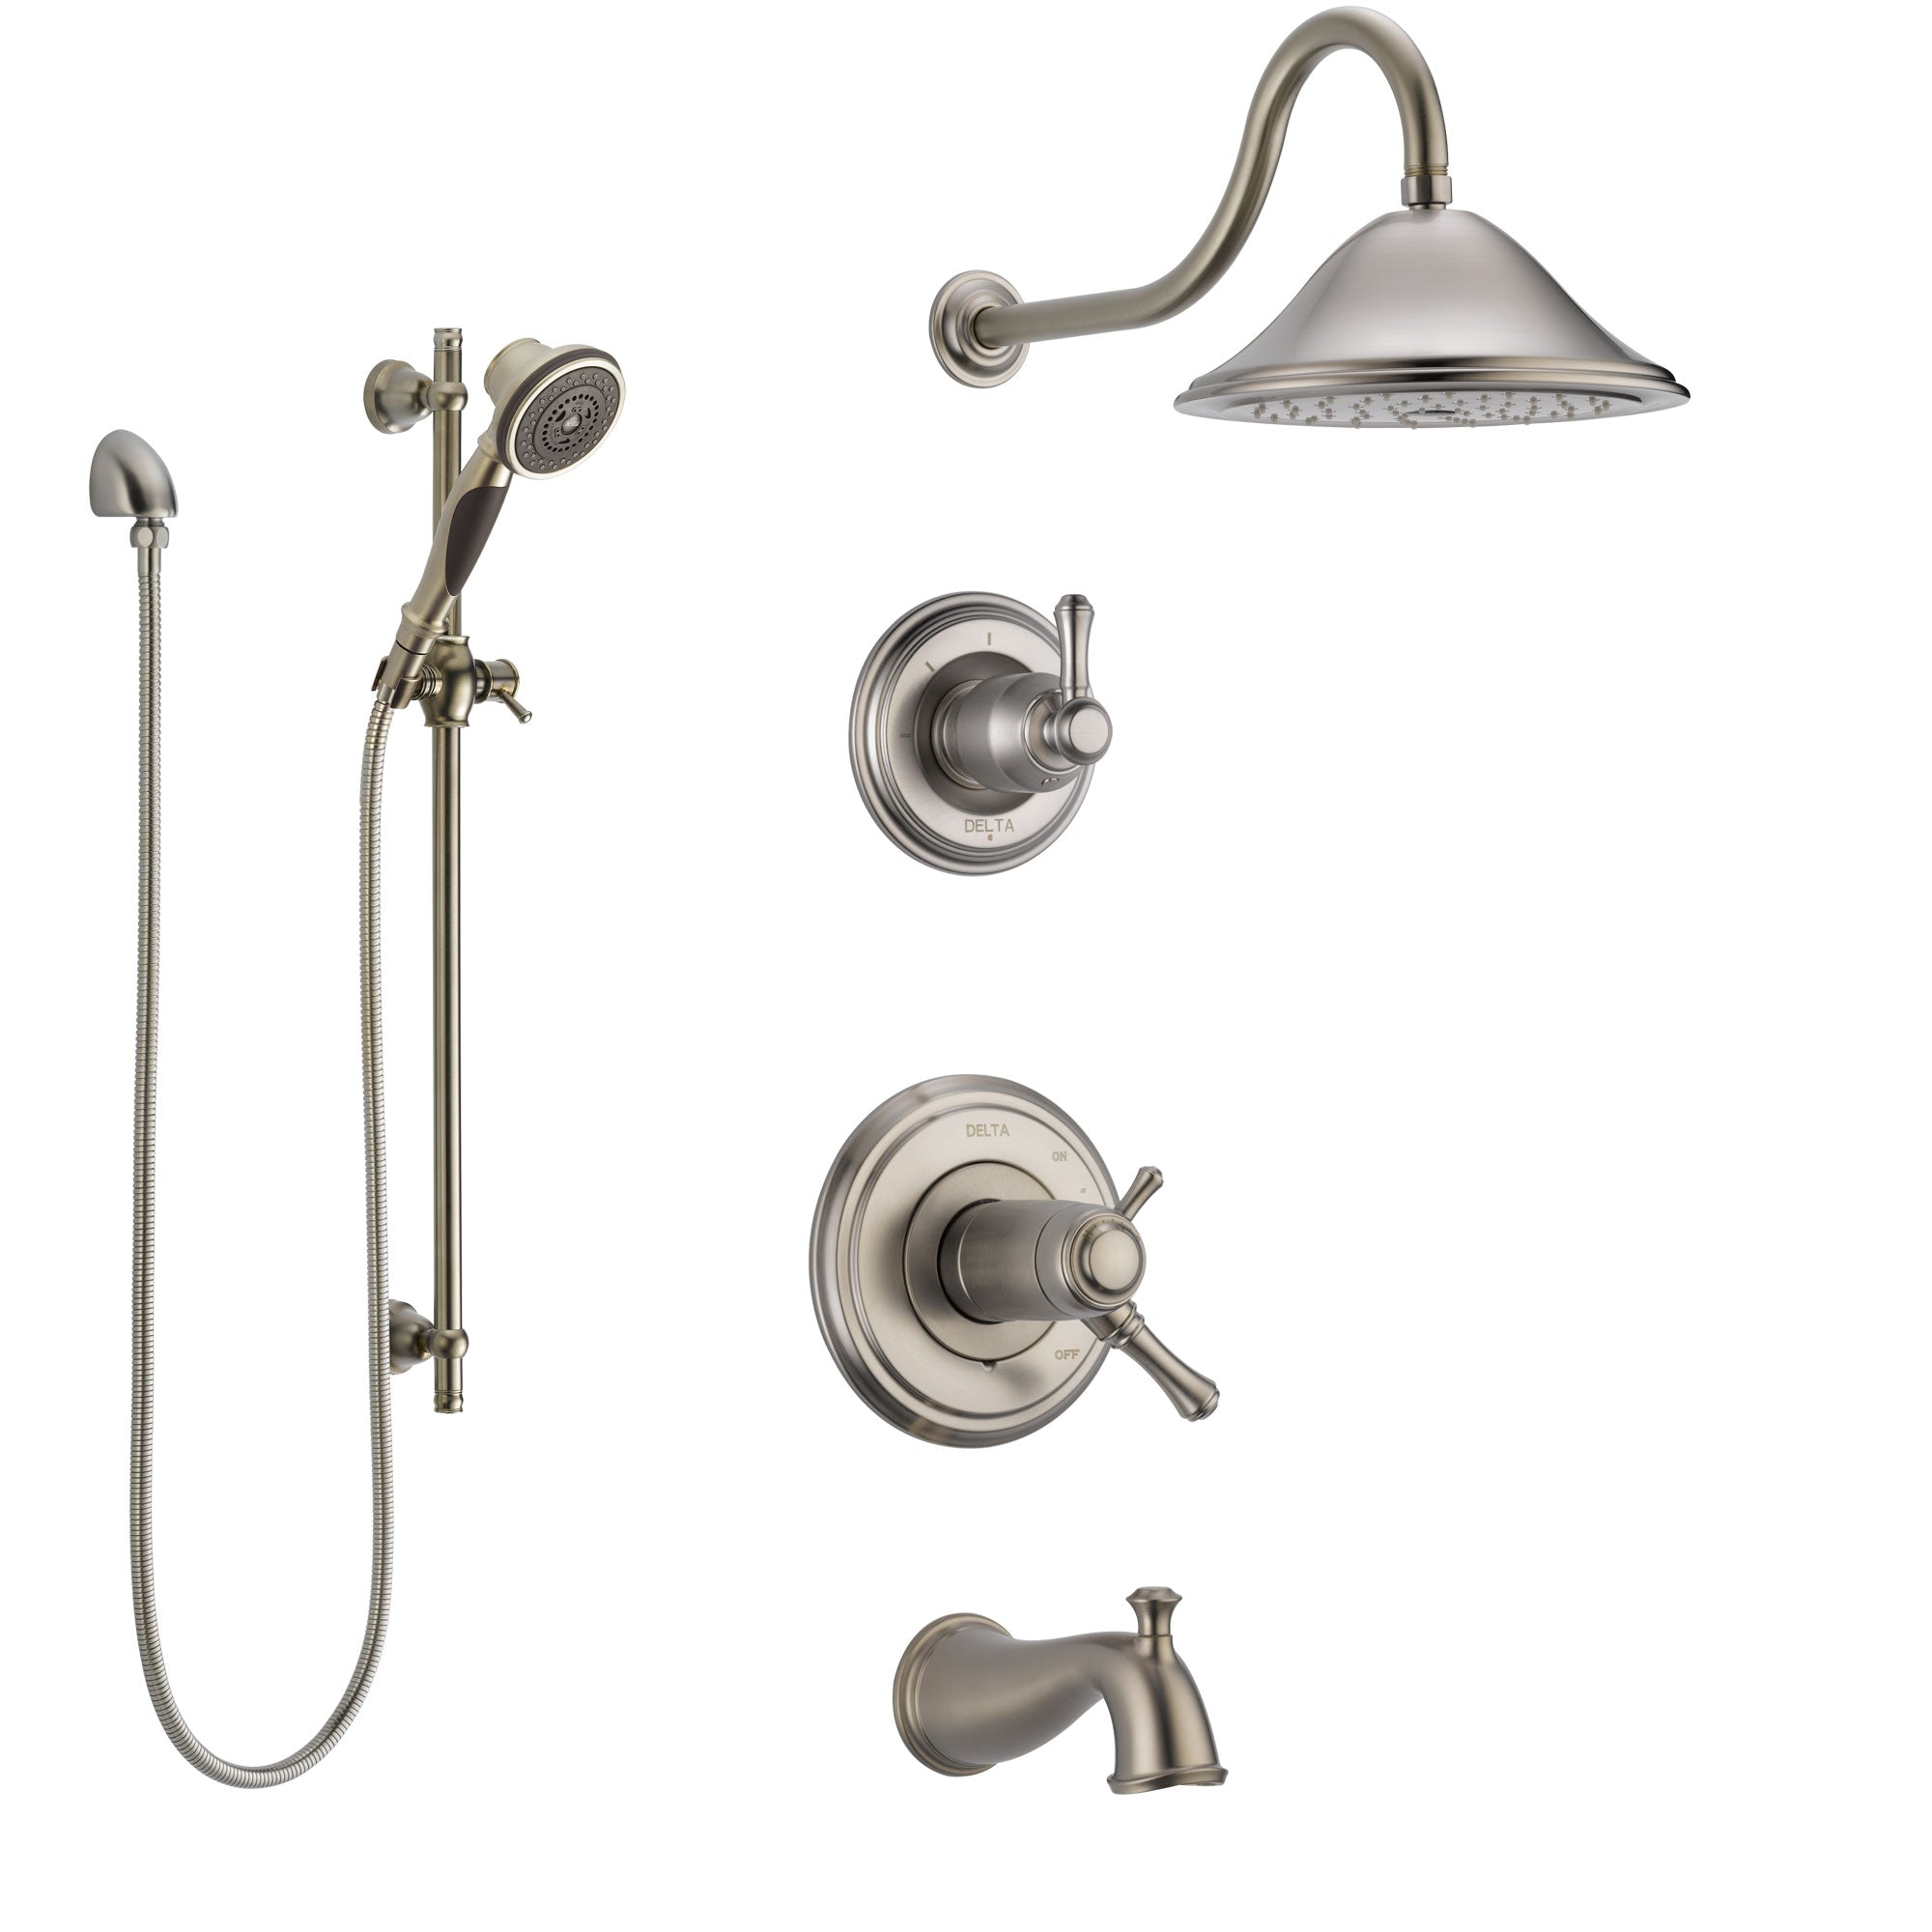 Delta Cassidy Stainless Steel Finish Tub and Shower System with Dual Thermostatic Control Handle, Diverter, Showerhead, and Hand Shower SS17T4972SS5